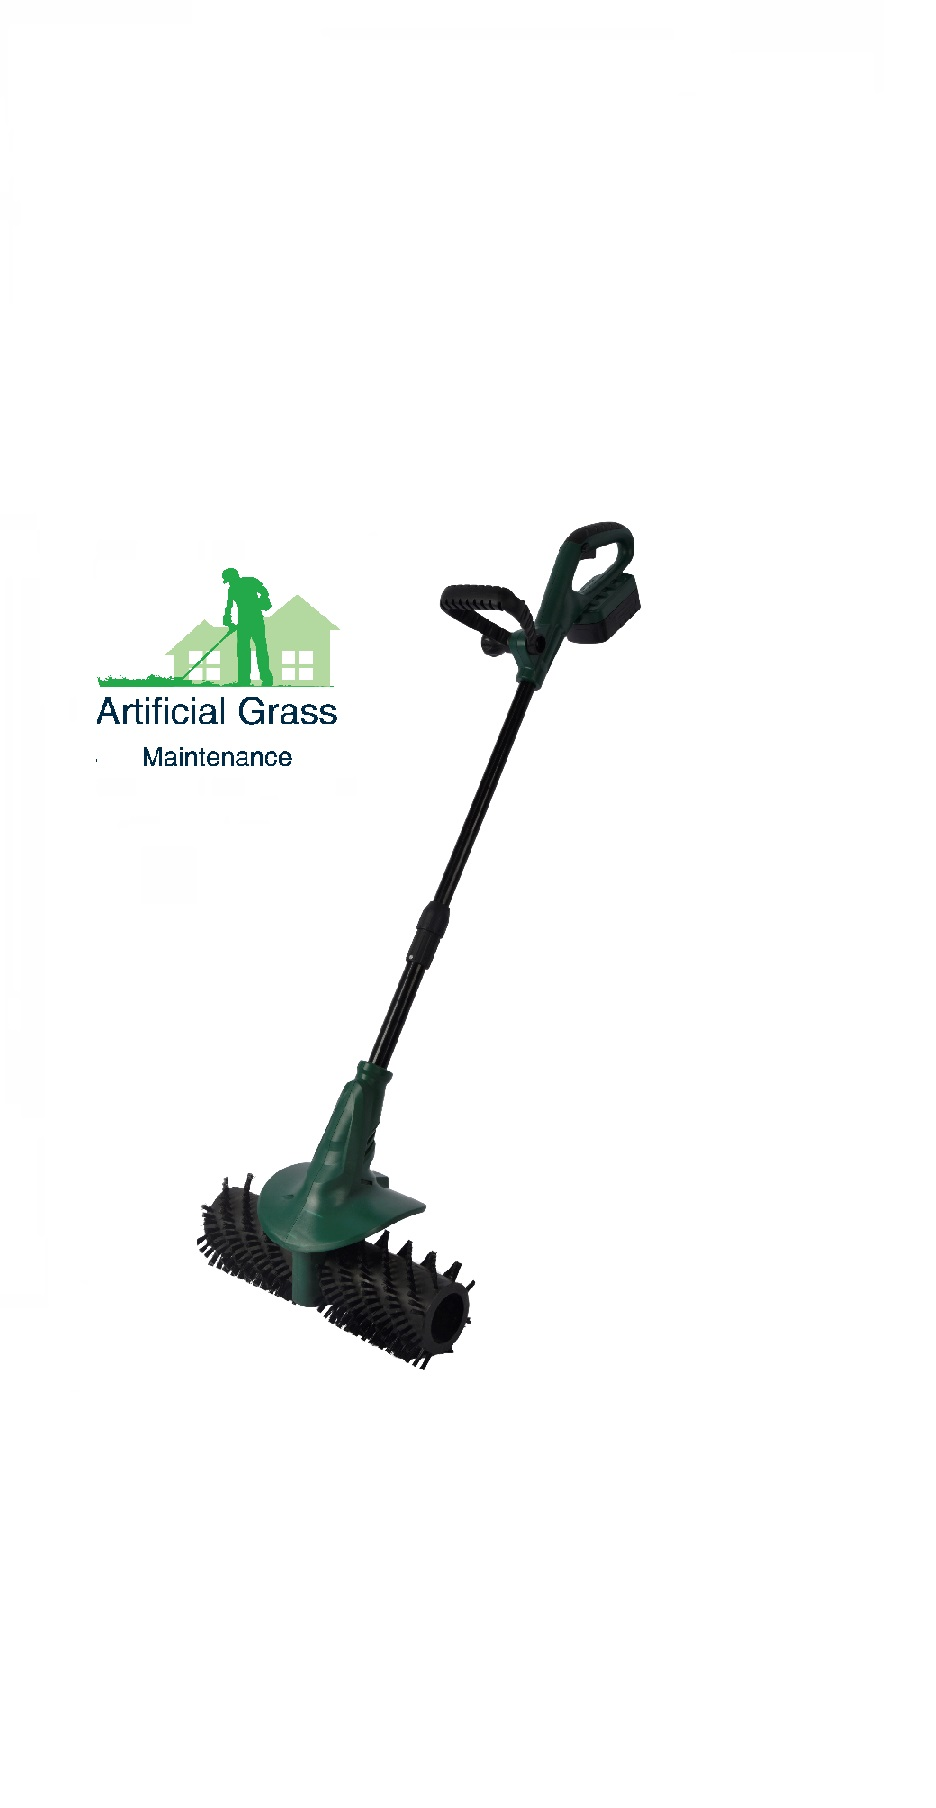 Agm 200 Cordless Power Brush Sweeper Artificial Grass